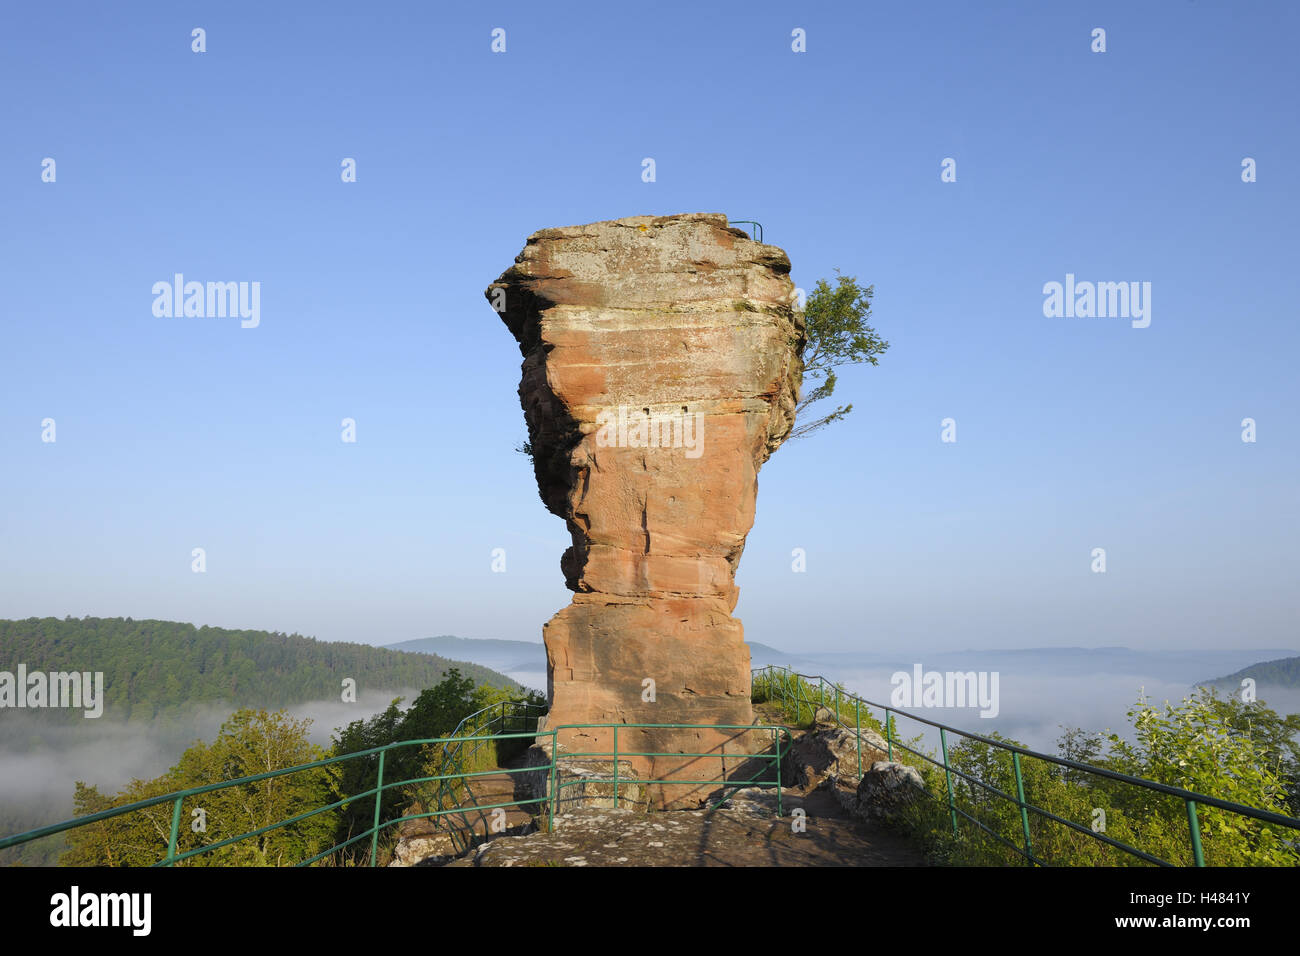 Tower of the castle ruin Drachenfels, 'molar', lookout, Busenberg, Palatinate Forest, Rhineland-Palatinate, - Stock Image